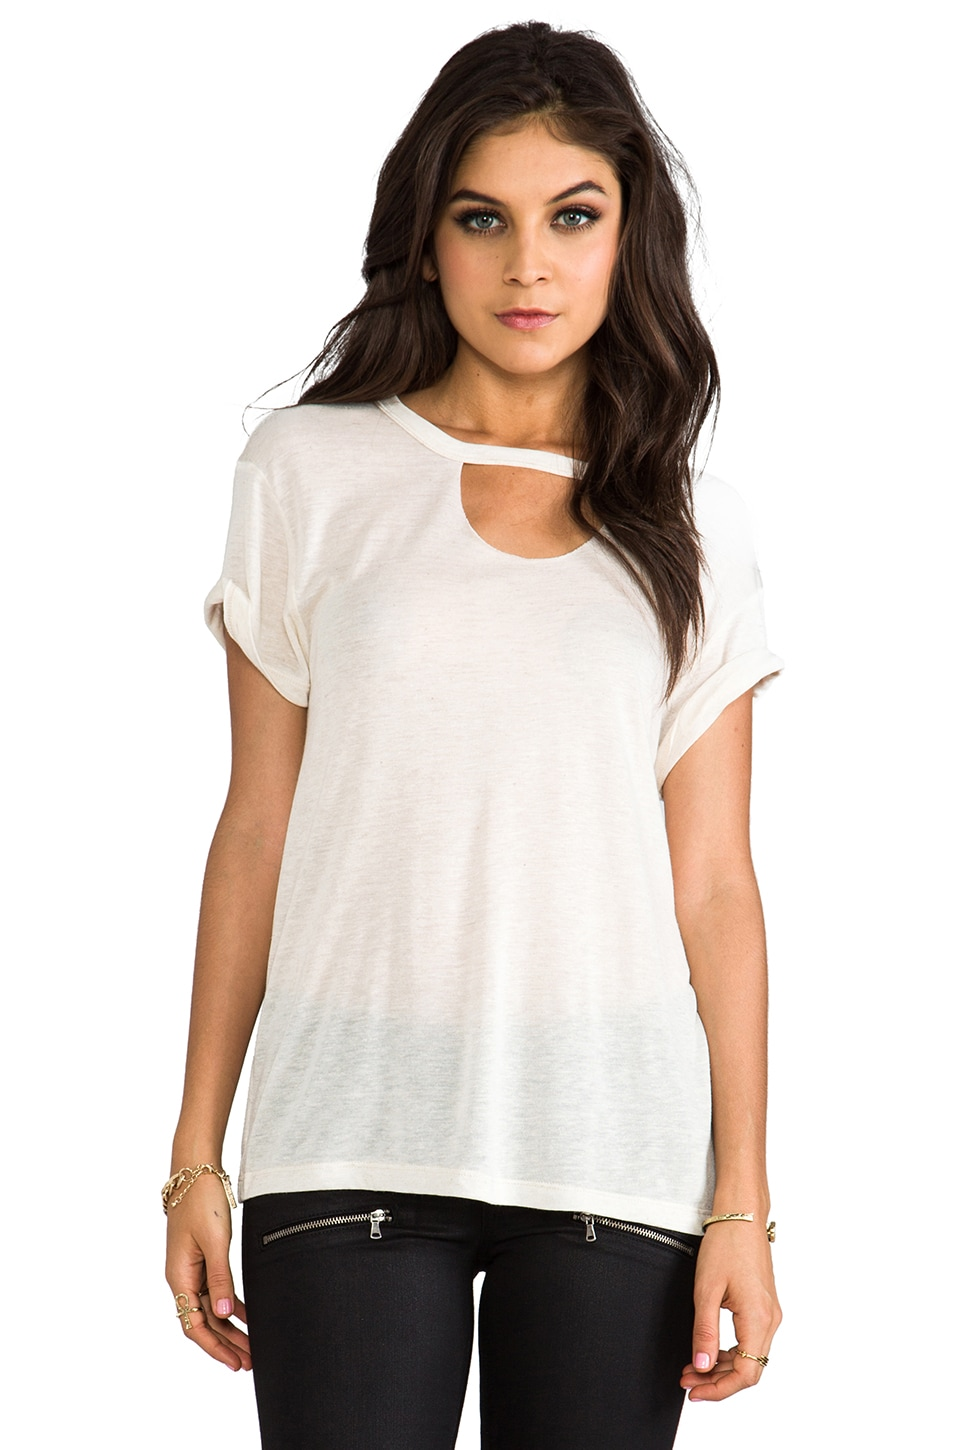 LNA Mosshart Tee in White